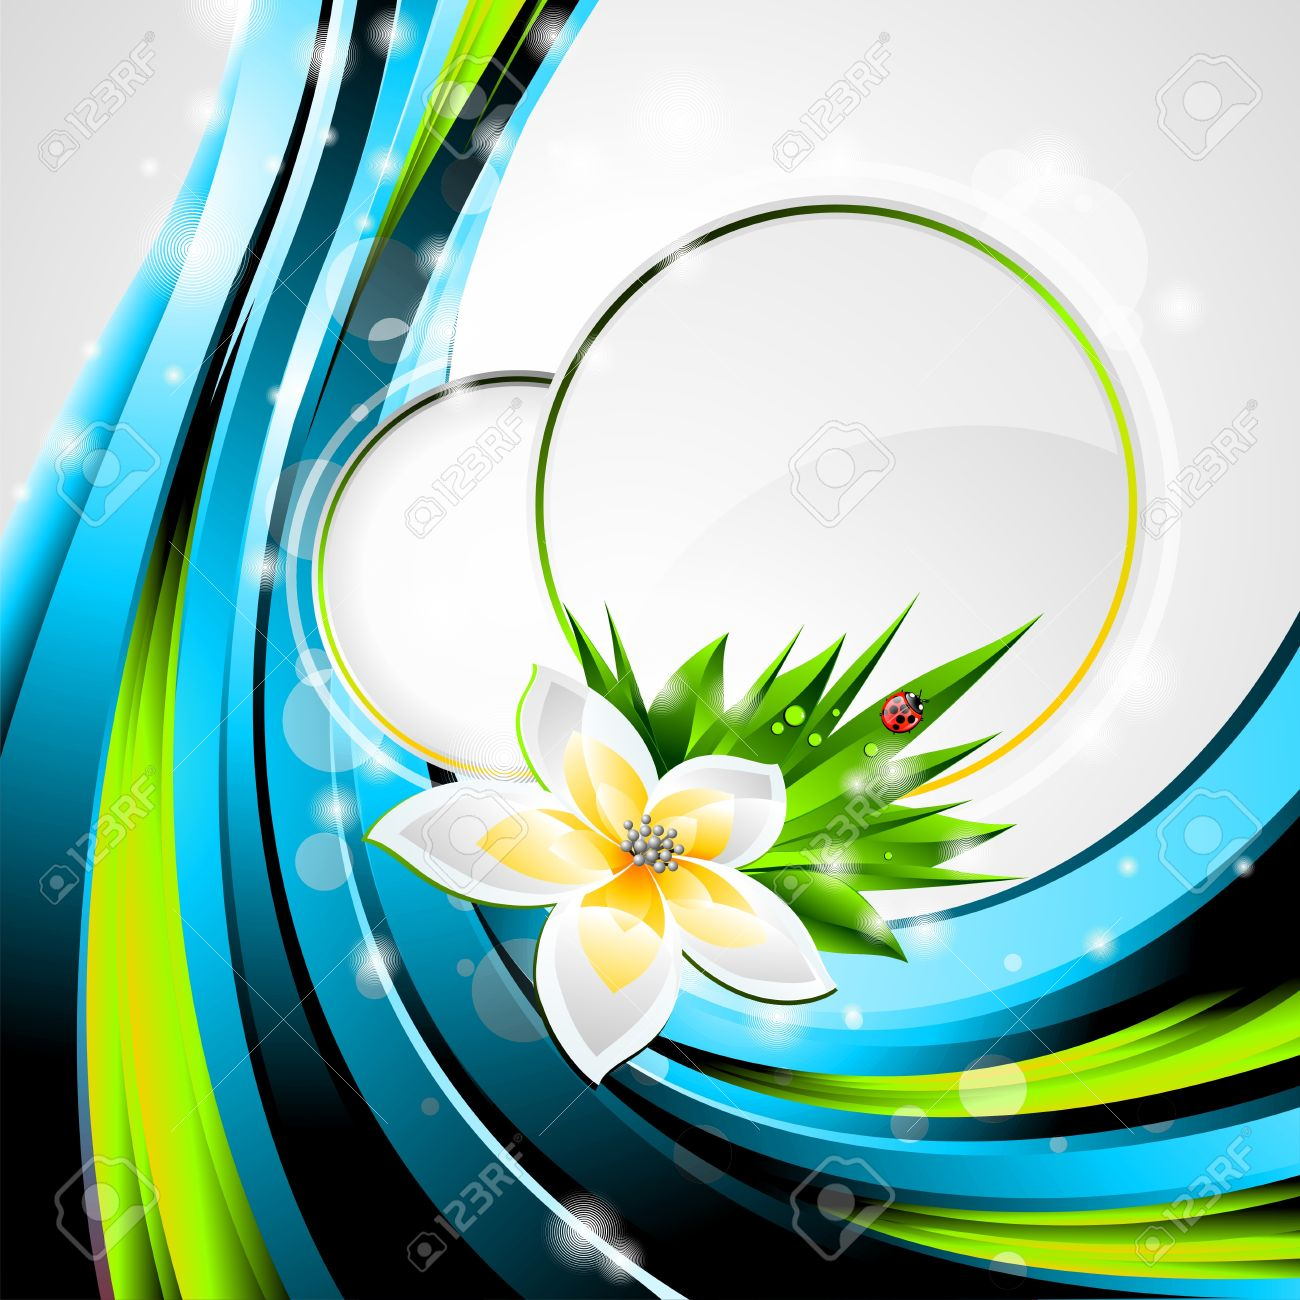 background design on a spring and nature theme with flower royalty